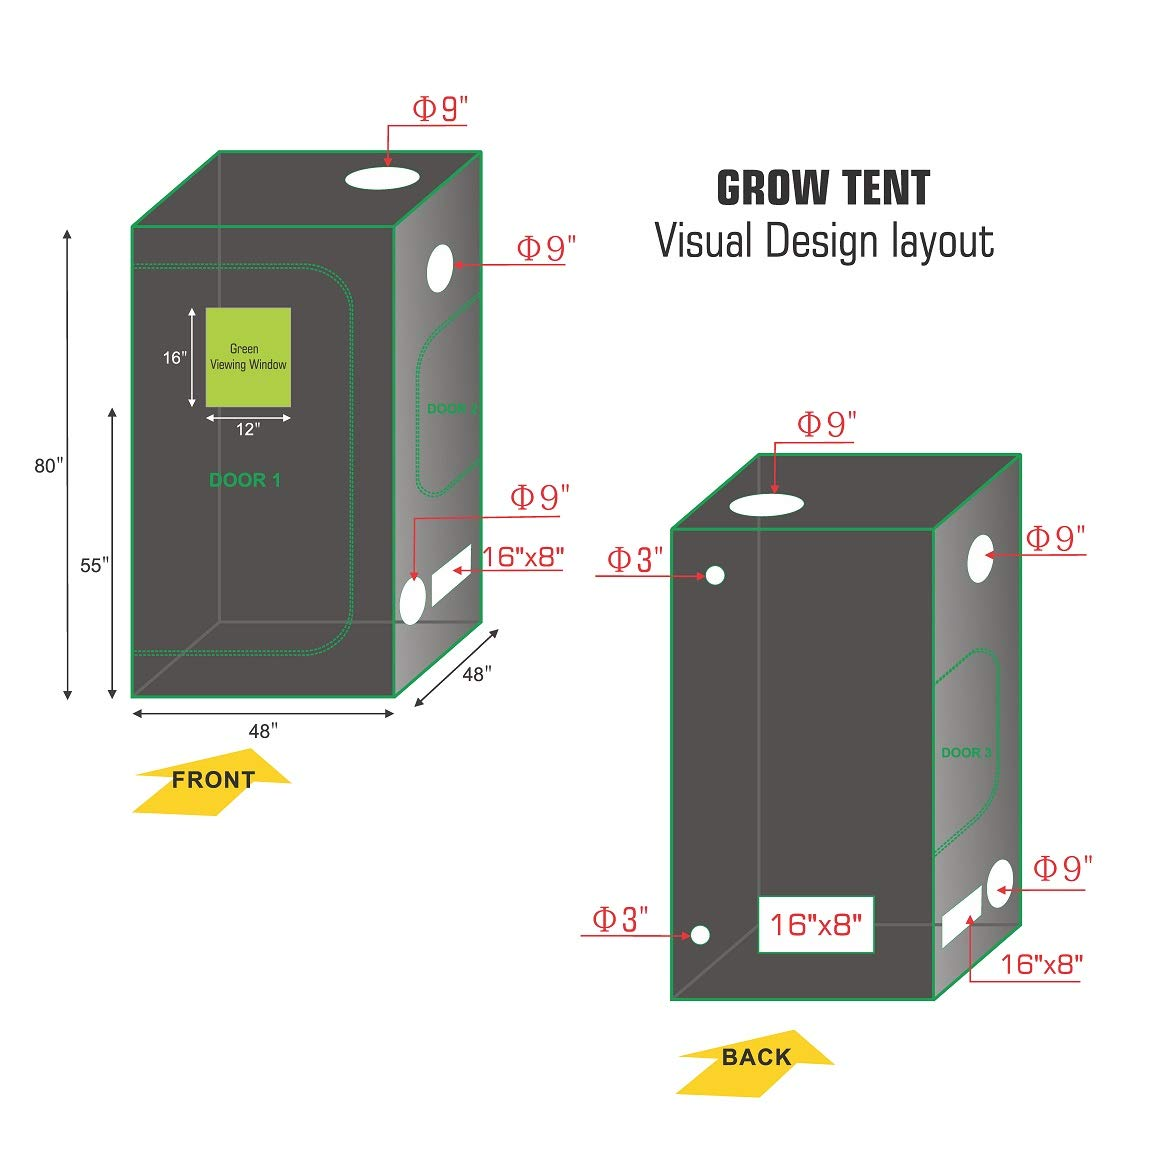 TopoLite 24 x24 x48 32 x32 X63 36 x20 x63 36 x36 x72 48 x24 x60 48 x24 x72 48 x48 x80 60 x60 x80 Grow Tent Reflective Mylar for Hydroponic Indoor Planting 48 x48 x80 Metal Corner Window